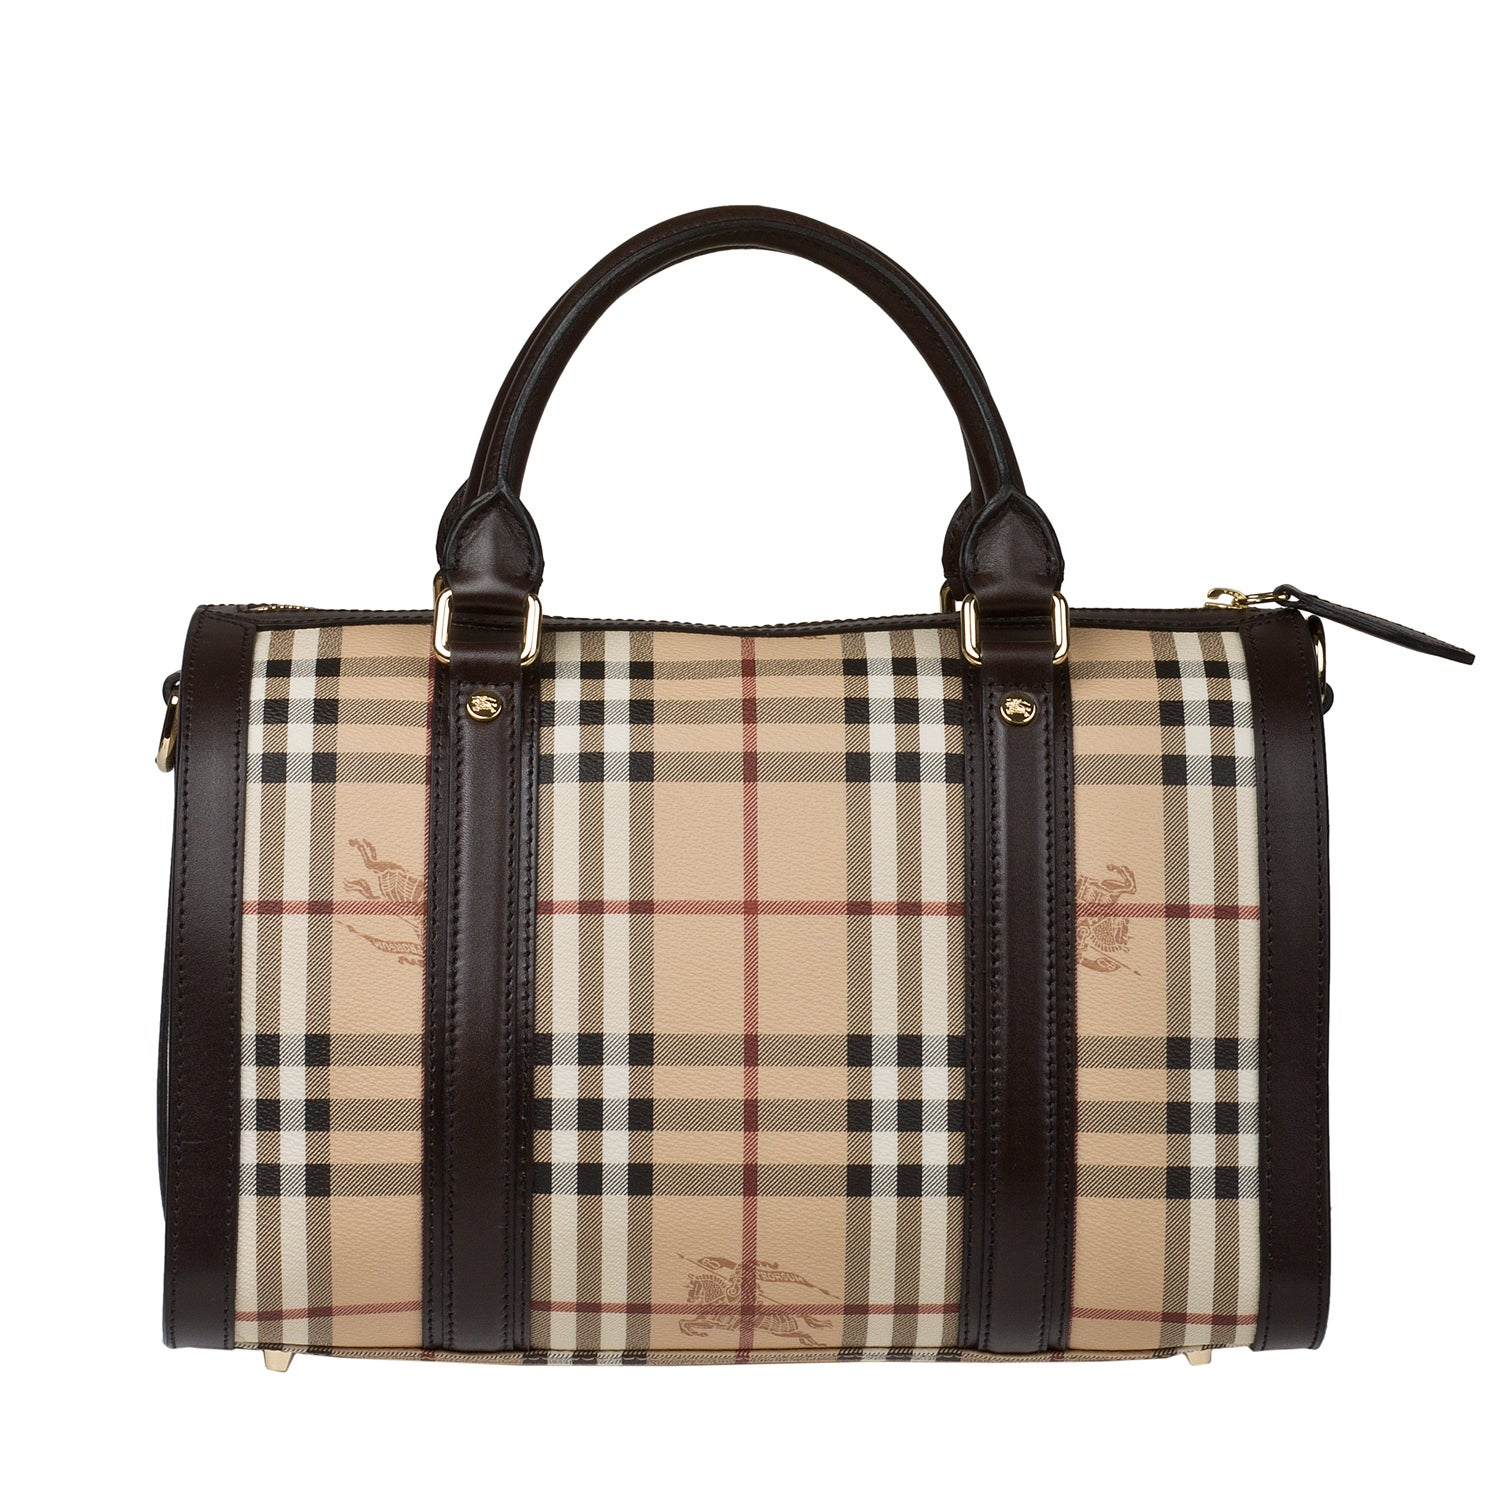 Burberry Medium Haymarket Check Bowler Bag